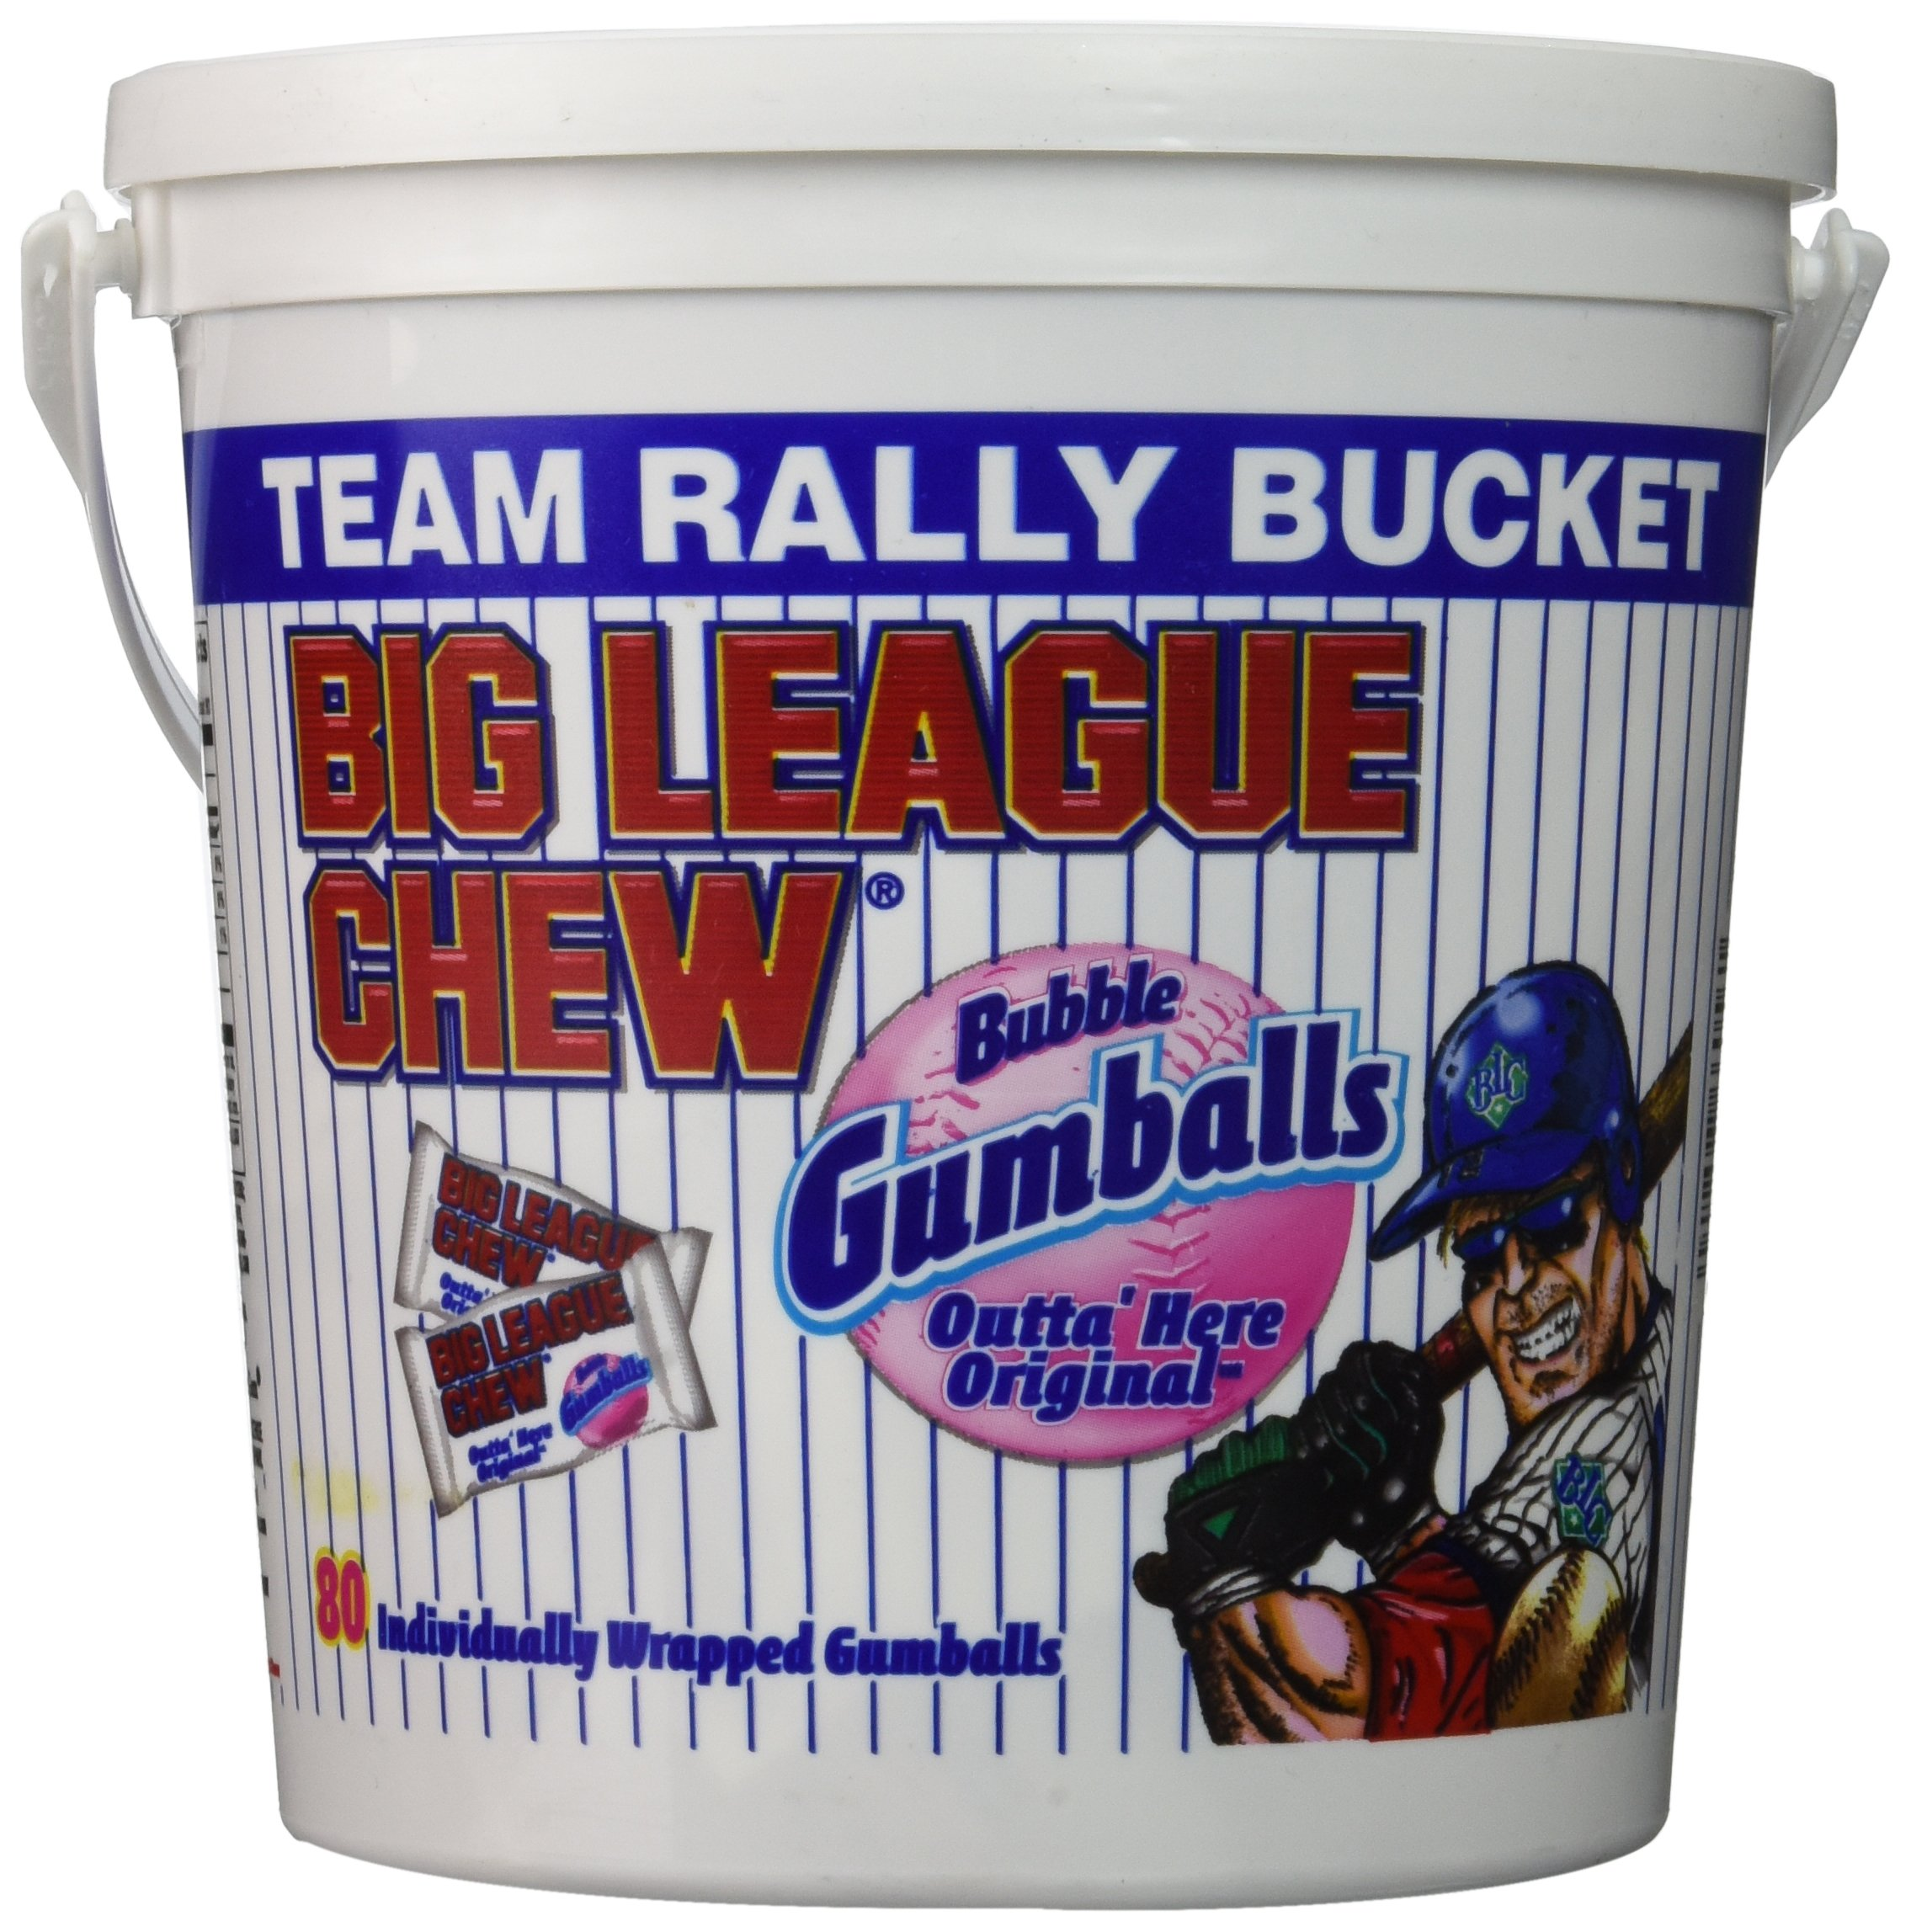 Big League Chew - Original Bubble Gum Flavor + 80pcs Individually Wrapped Gumballs + Baseball Dugout Team Rally Bucket + Perfect for Games, Concession Stands, Picnics and Parties by Big League Chew